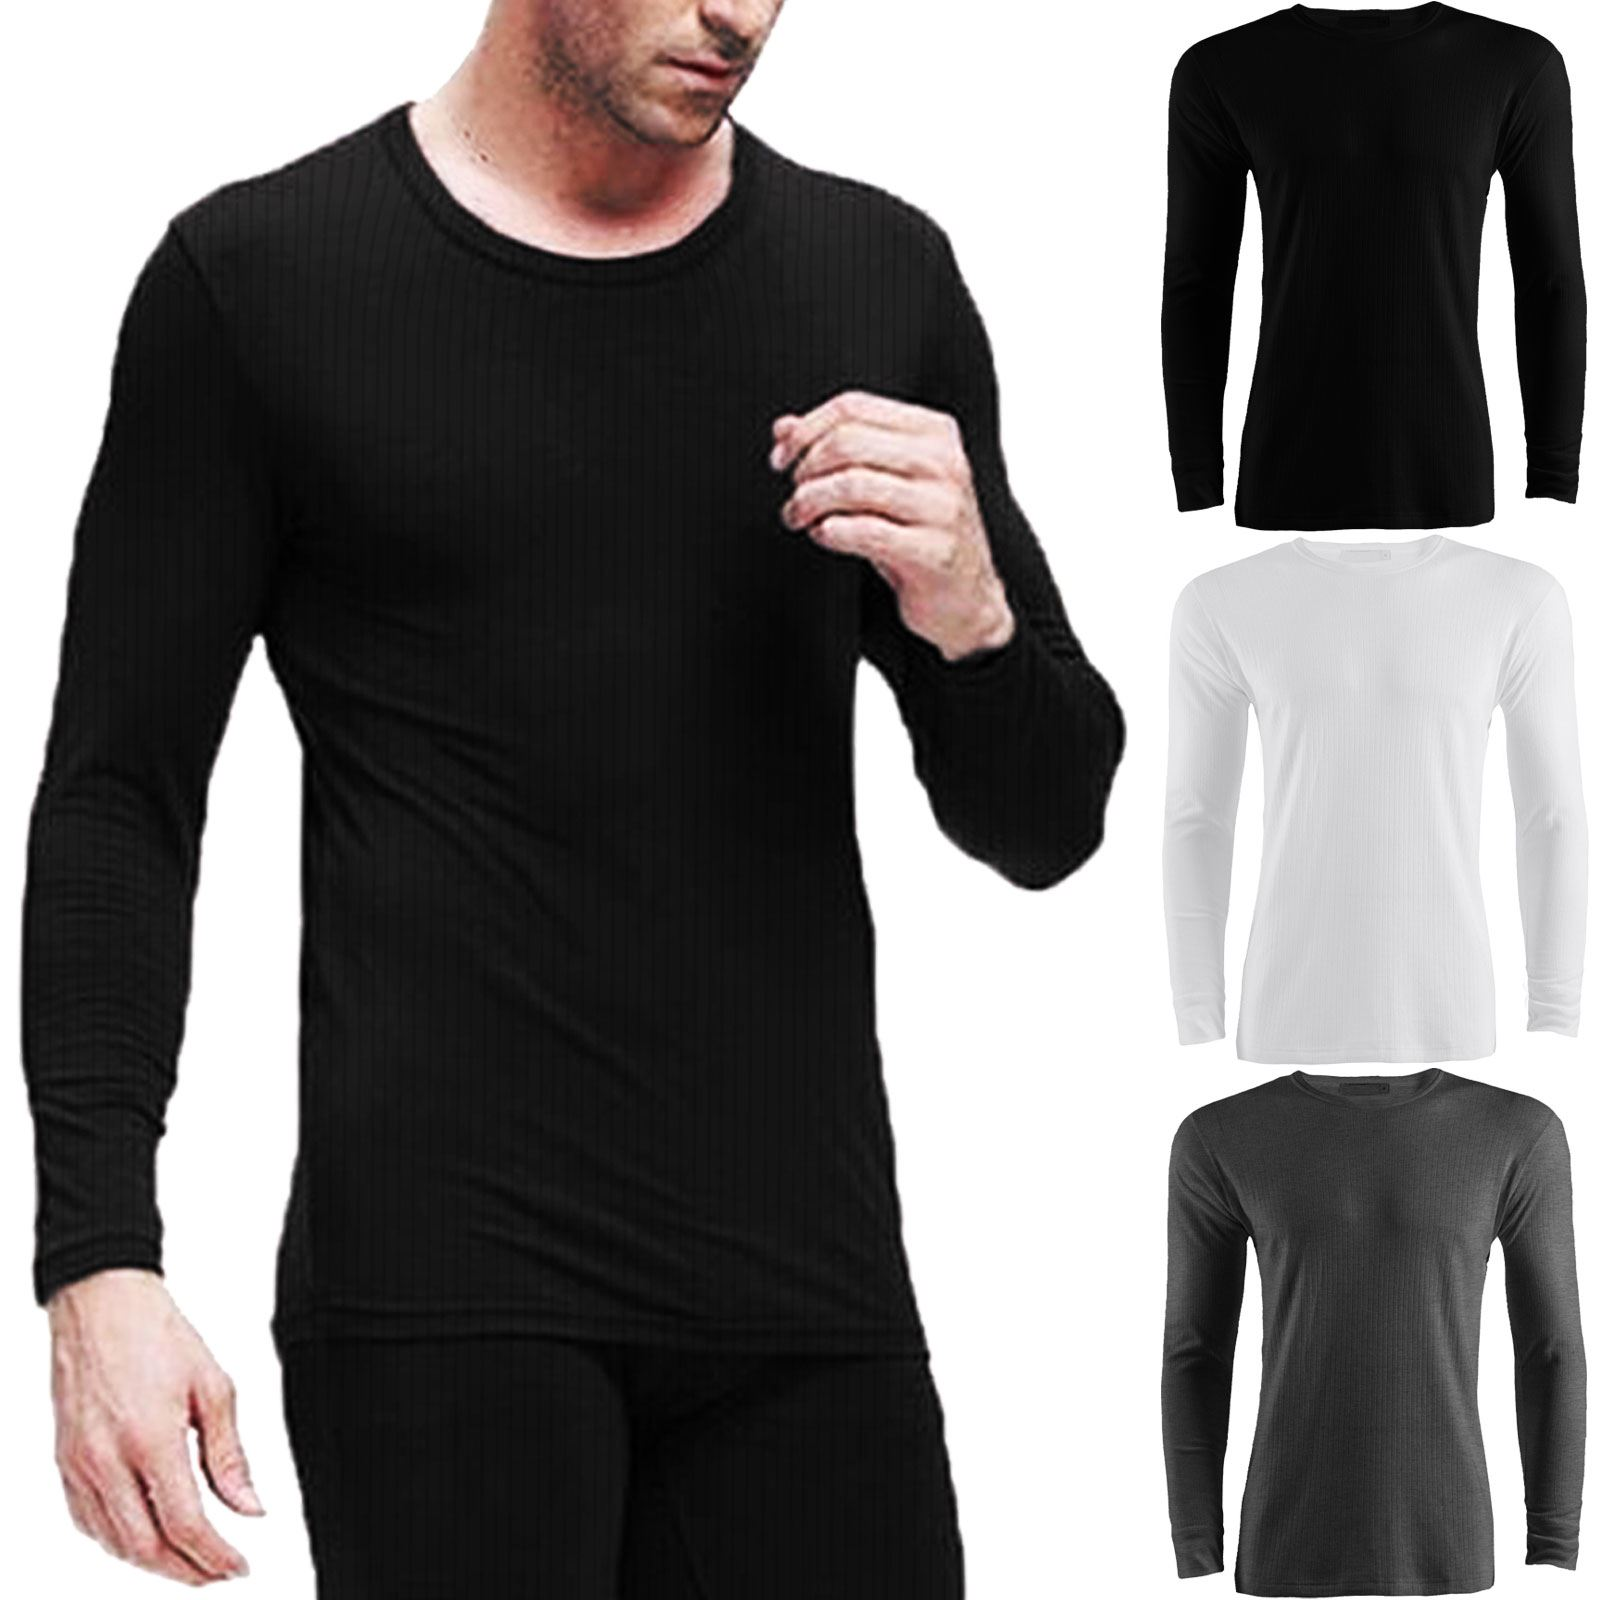 Adults kids thermal full sets underwear tops shirts long for Mens dress shirt onesie